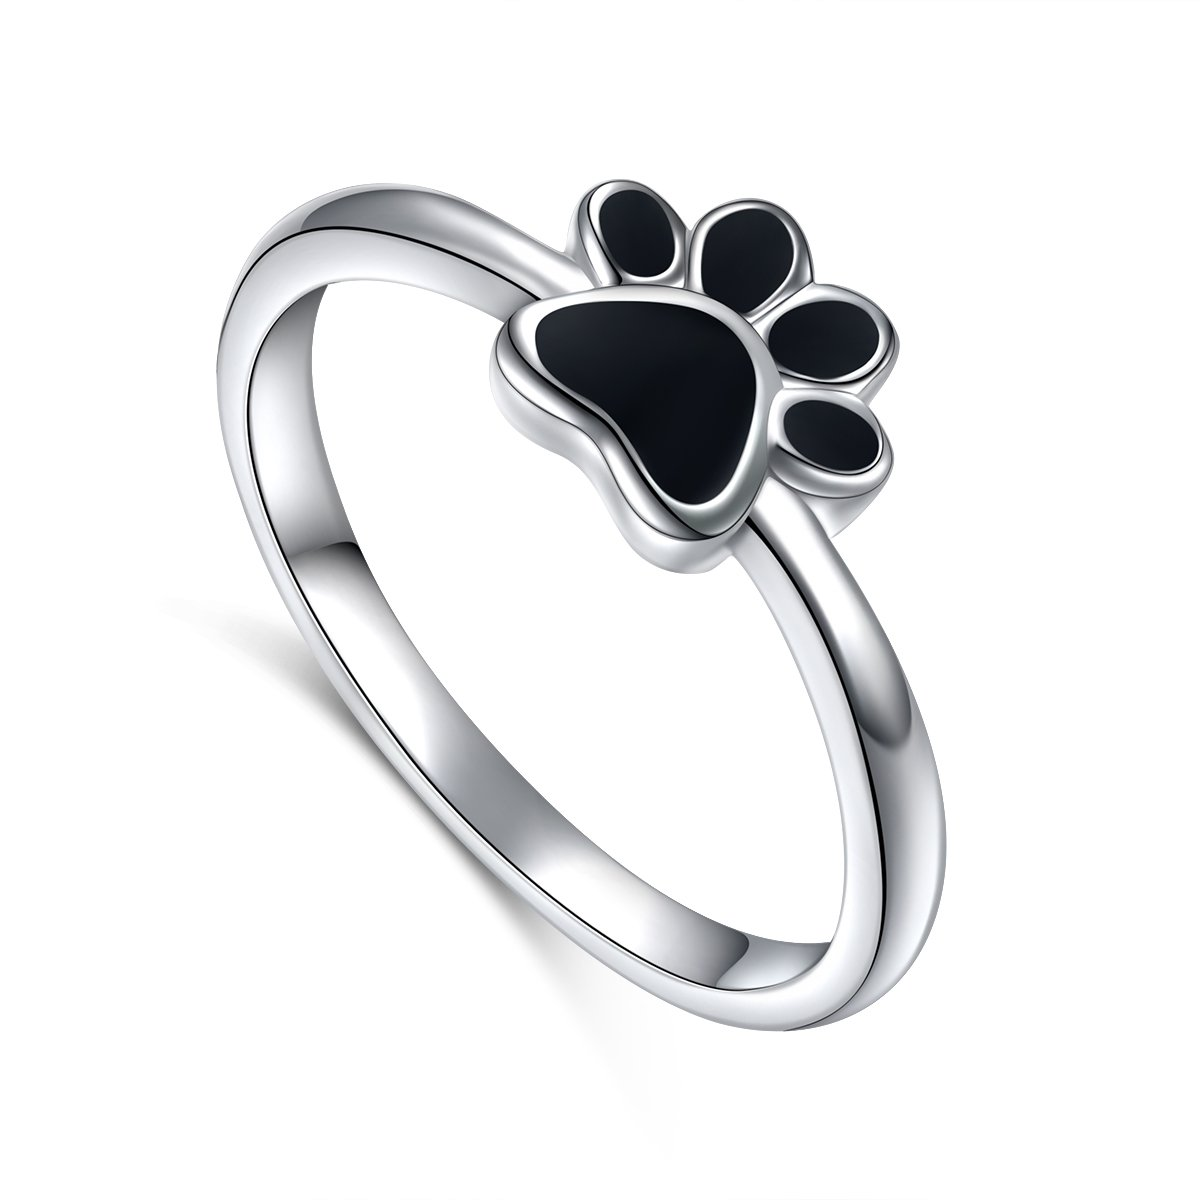 S925 Sterling Silver Jewelry Puppy Dog Cat Pet Paw Print Ring Size 7# by Ladytree